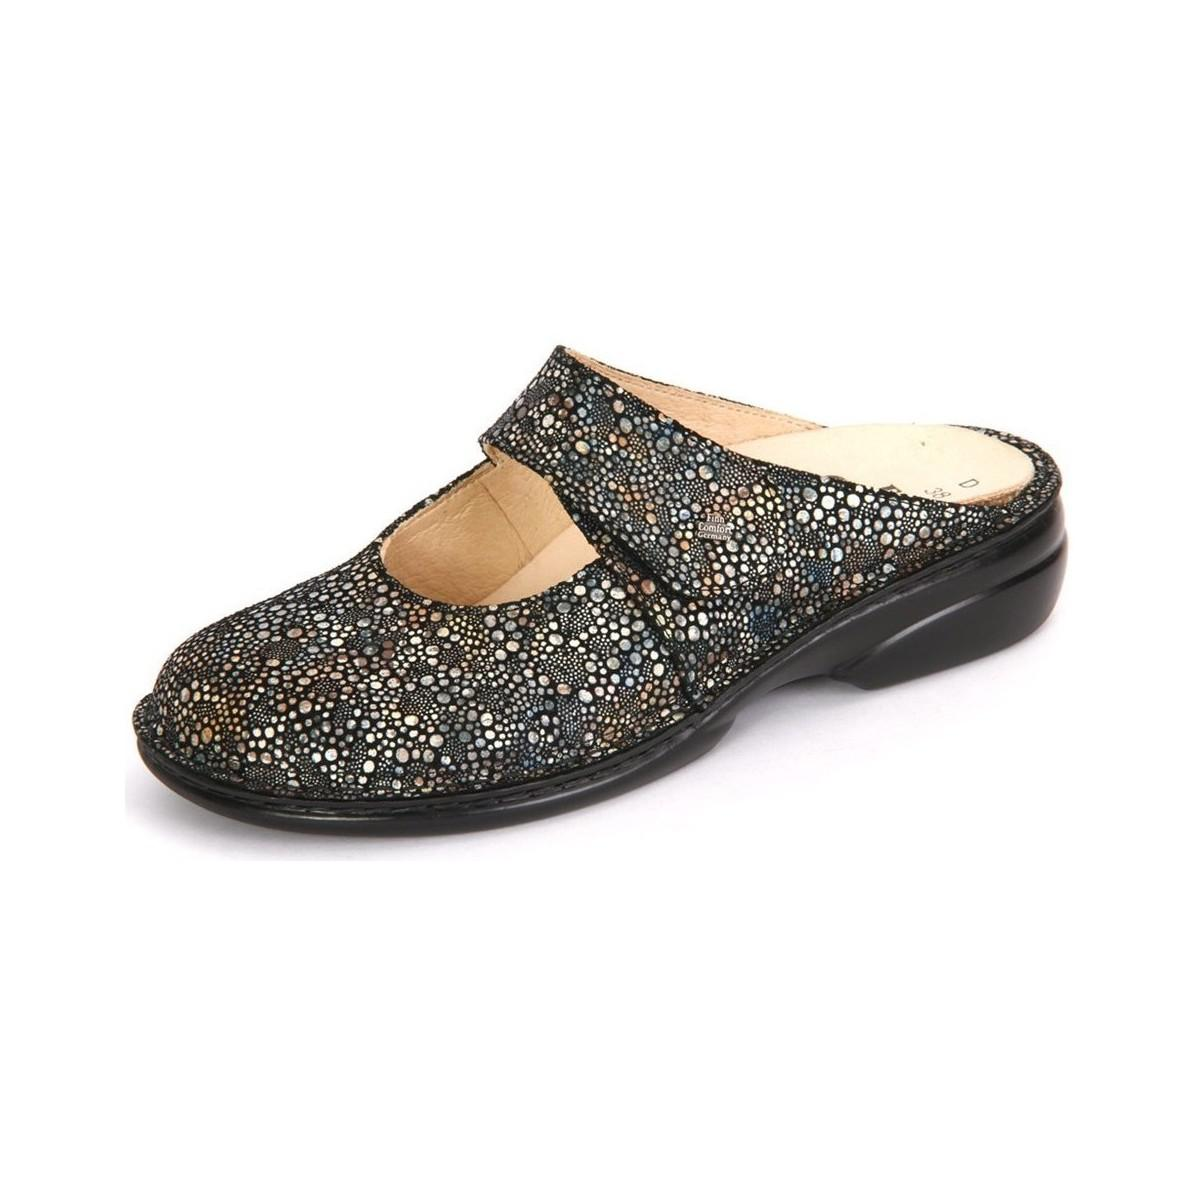 Sale Sale Official Finn Stanford Multi Miles women's Clogs (Shoes) in Sale Finishline X1xL9p3g